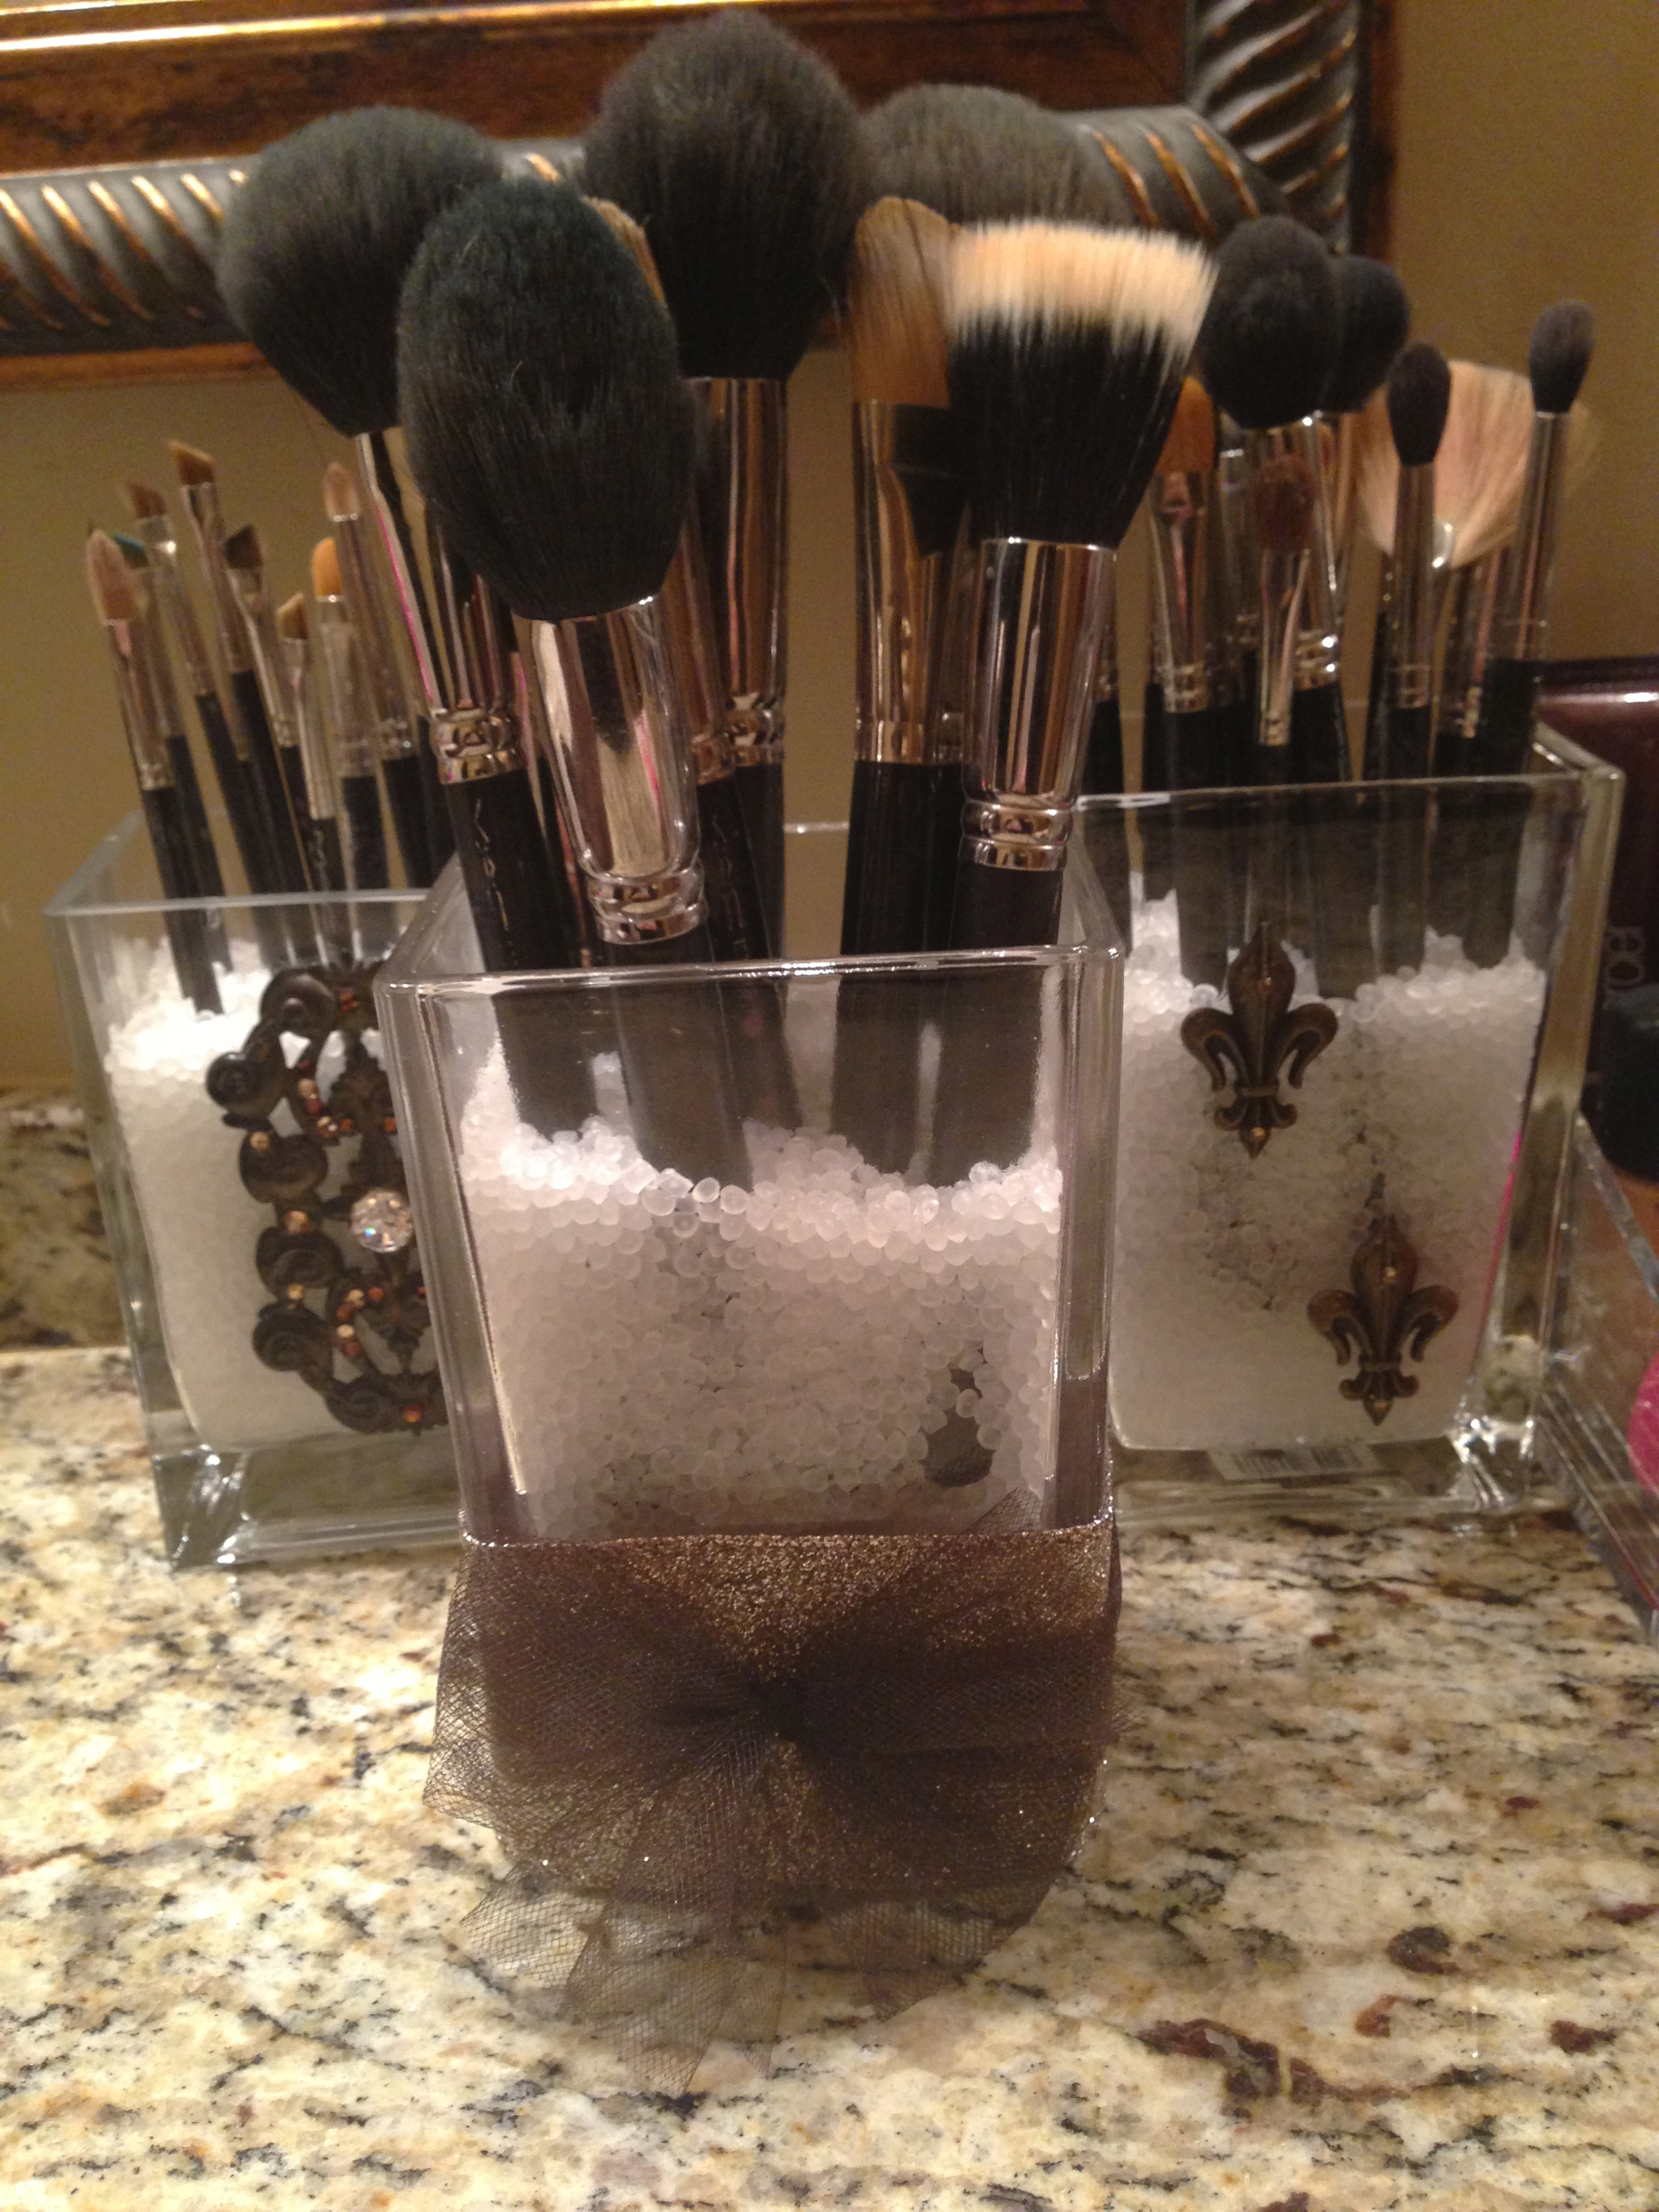 ... loveleighbeauty-DIY makeupbrush holder & DIY Makeup Brush Holders u2013 Loveleigh Beauty